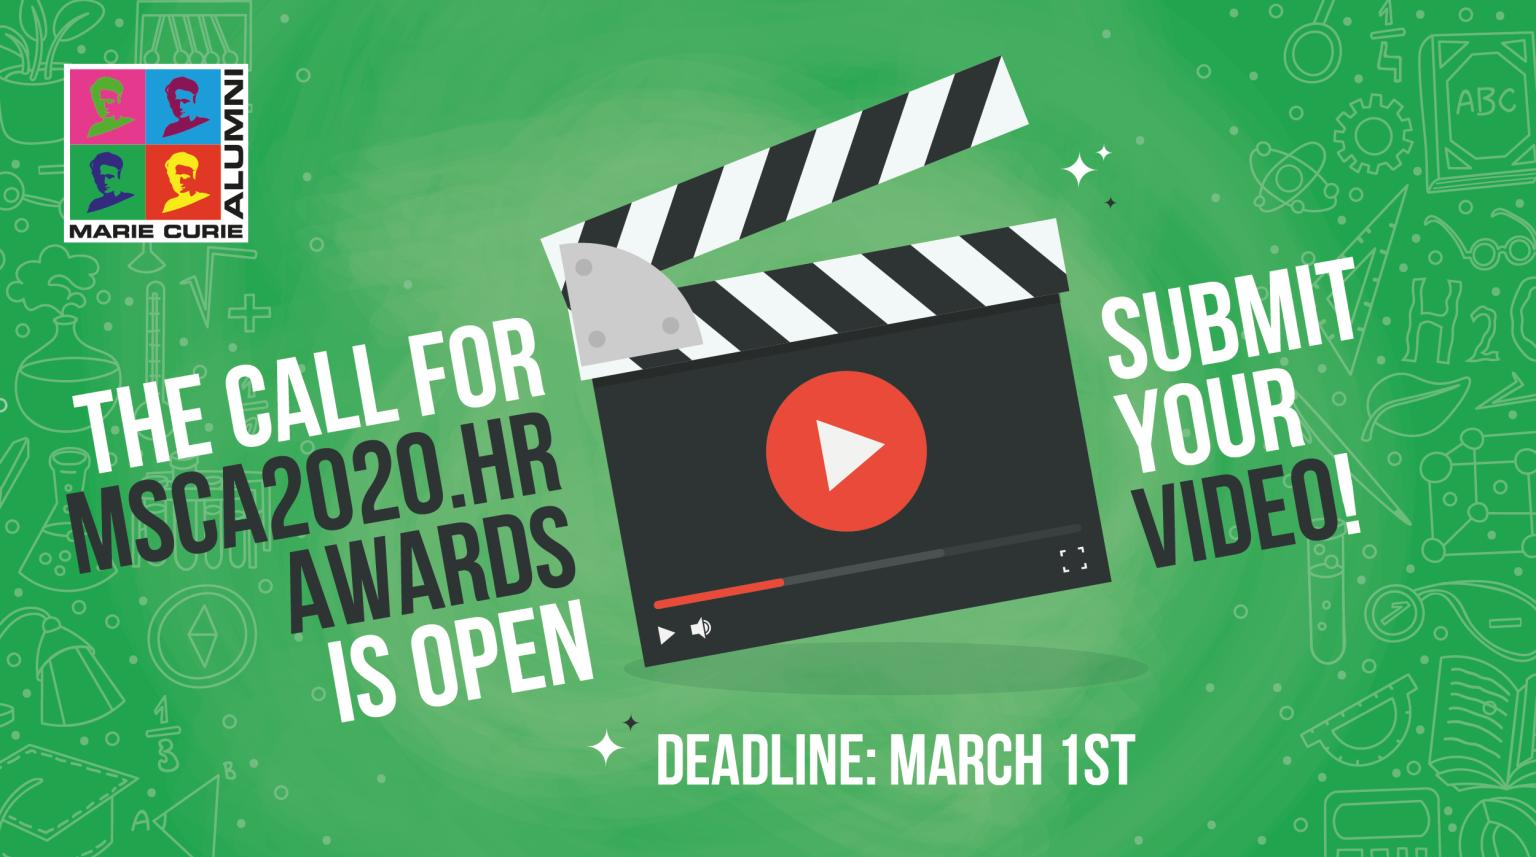 Call for MSCA2020.hr Awards is open! Deadline for submission is March 1st 2020, 17:00:00 Brussels time